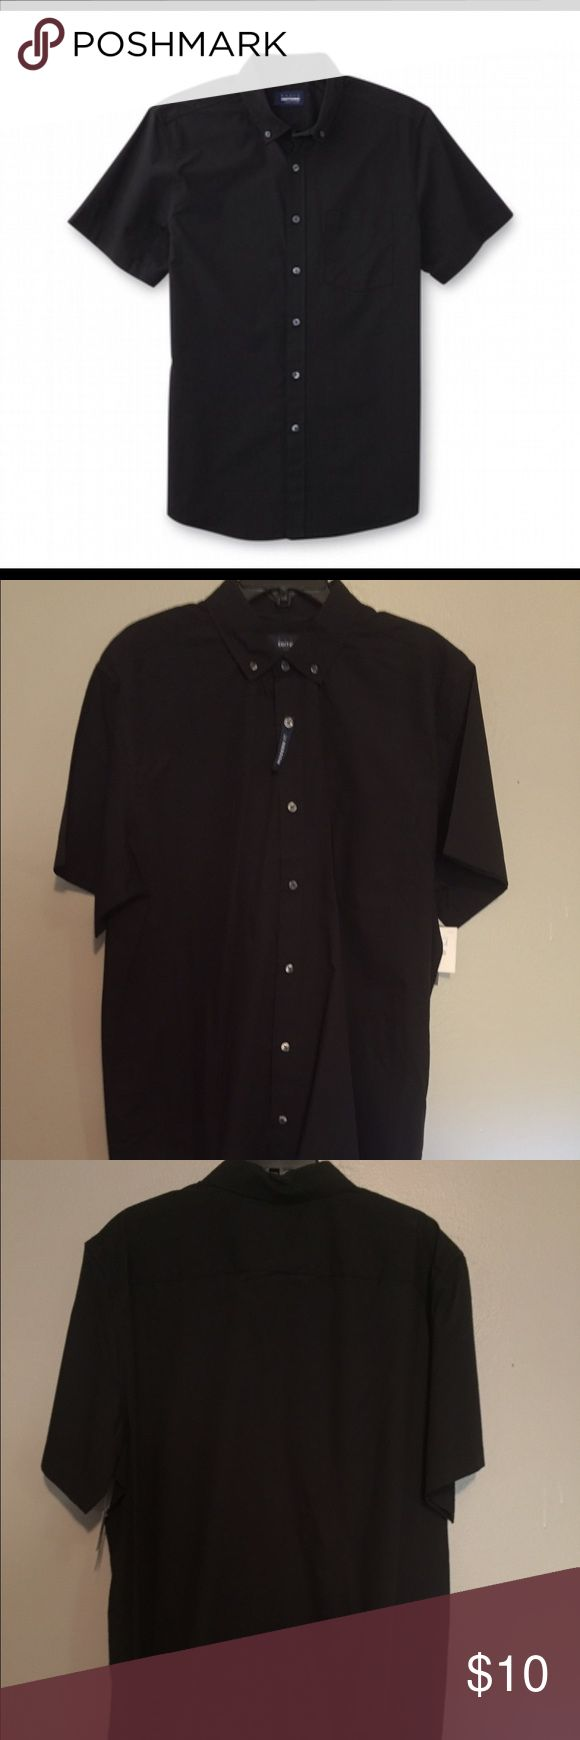 NWT XLT METEORITE BASIC EDITION BUTTON-FRONT SHIRT NWT METEORITE BASIC EDITIONS MEN'S BUTTON-FRONT SHIRT; size 3XLT. Wardrobe stable that fits for dressing up or down. Cut from lightweight poplin in a comfortable cotton blend, this easy care shirt resist wrinkles for wash and wear convenience.  A button-down collar gives this shirt a polished look that's perfect for topping off with a tie or bow tie. Basic Editions Shirts Casual Button Down Shirts